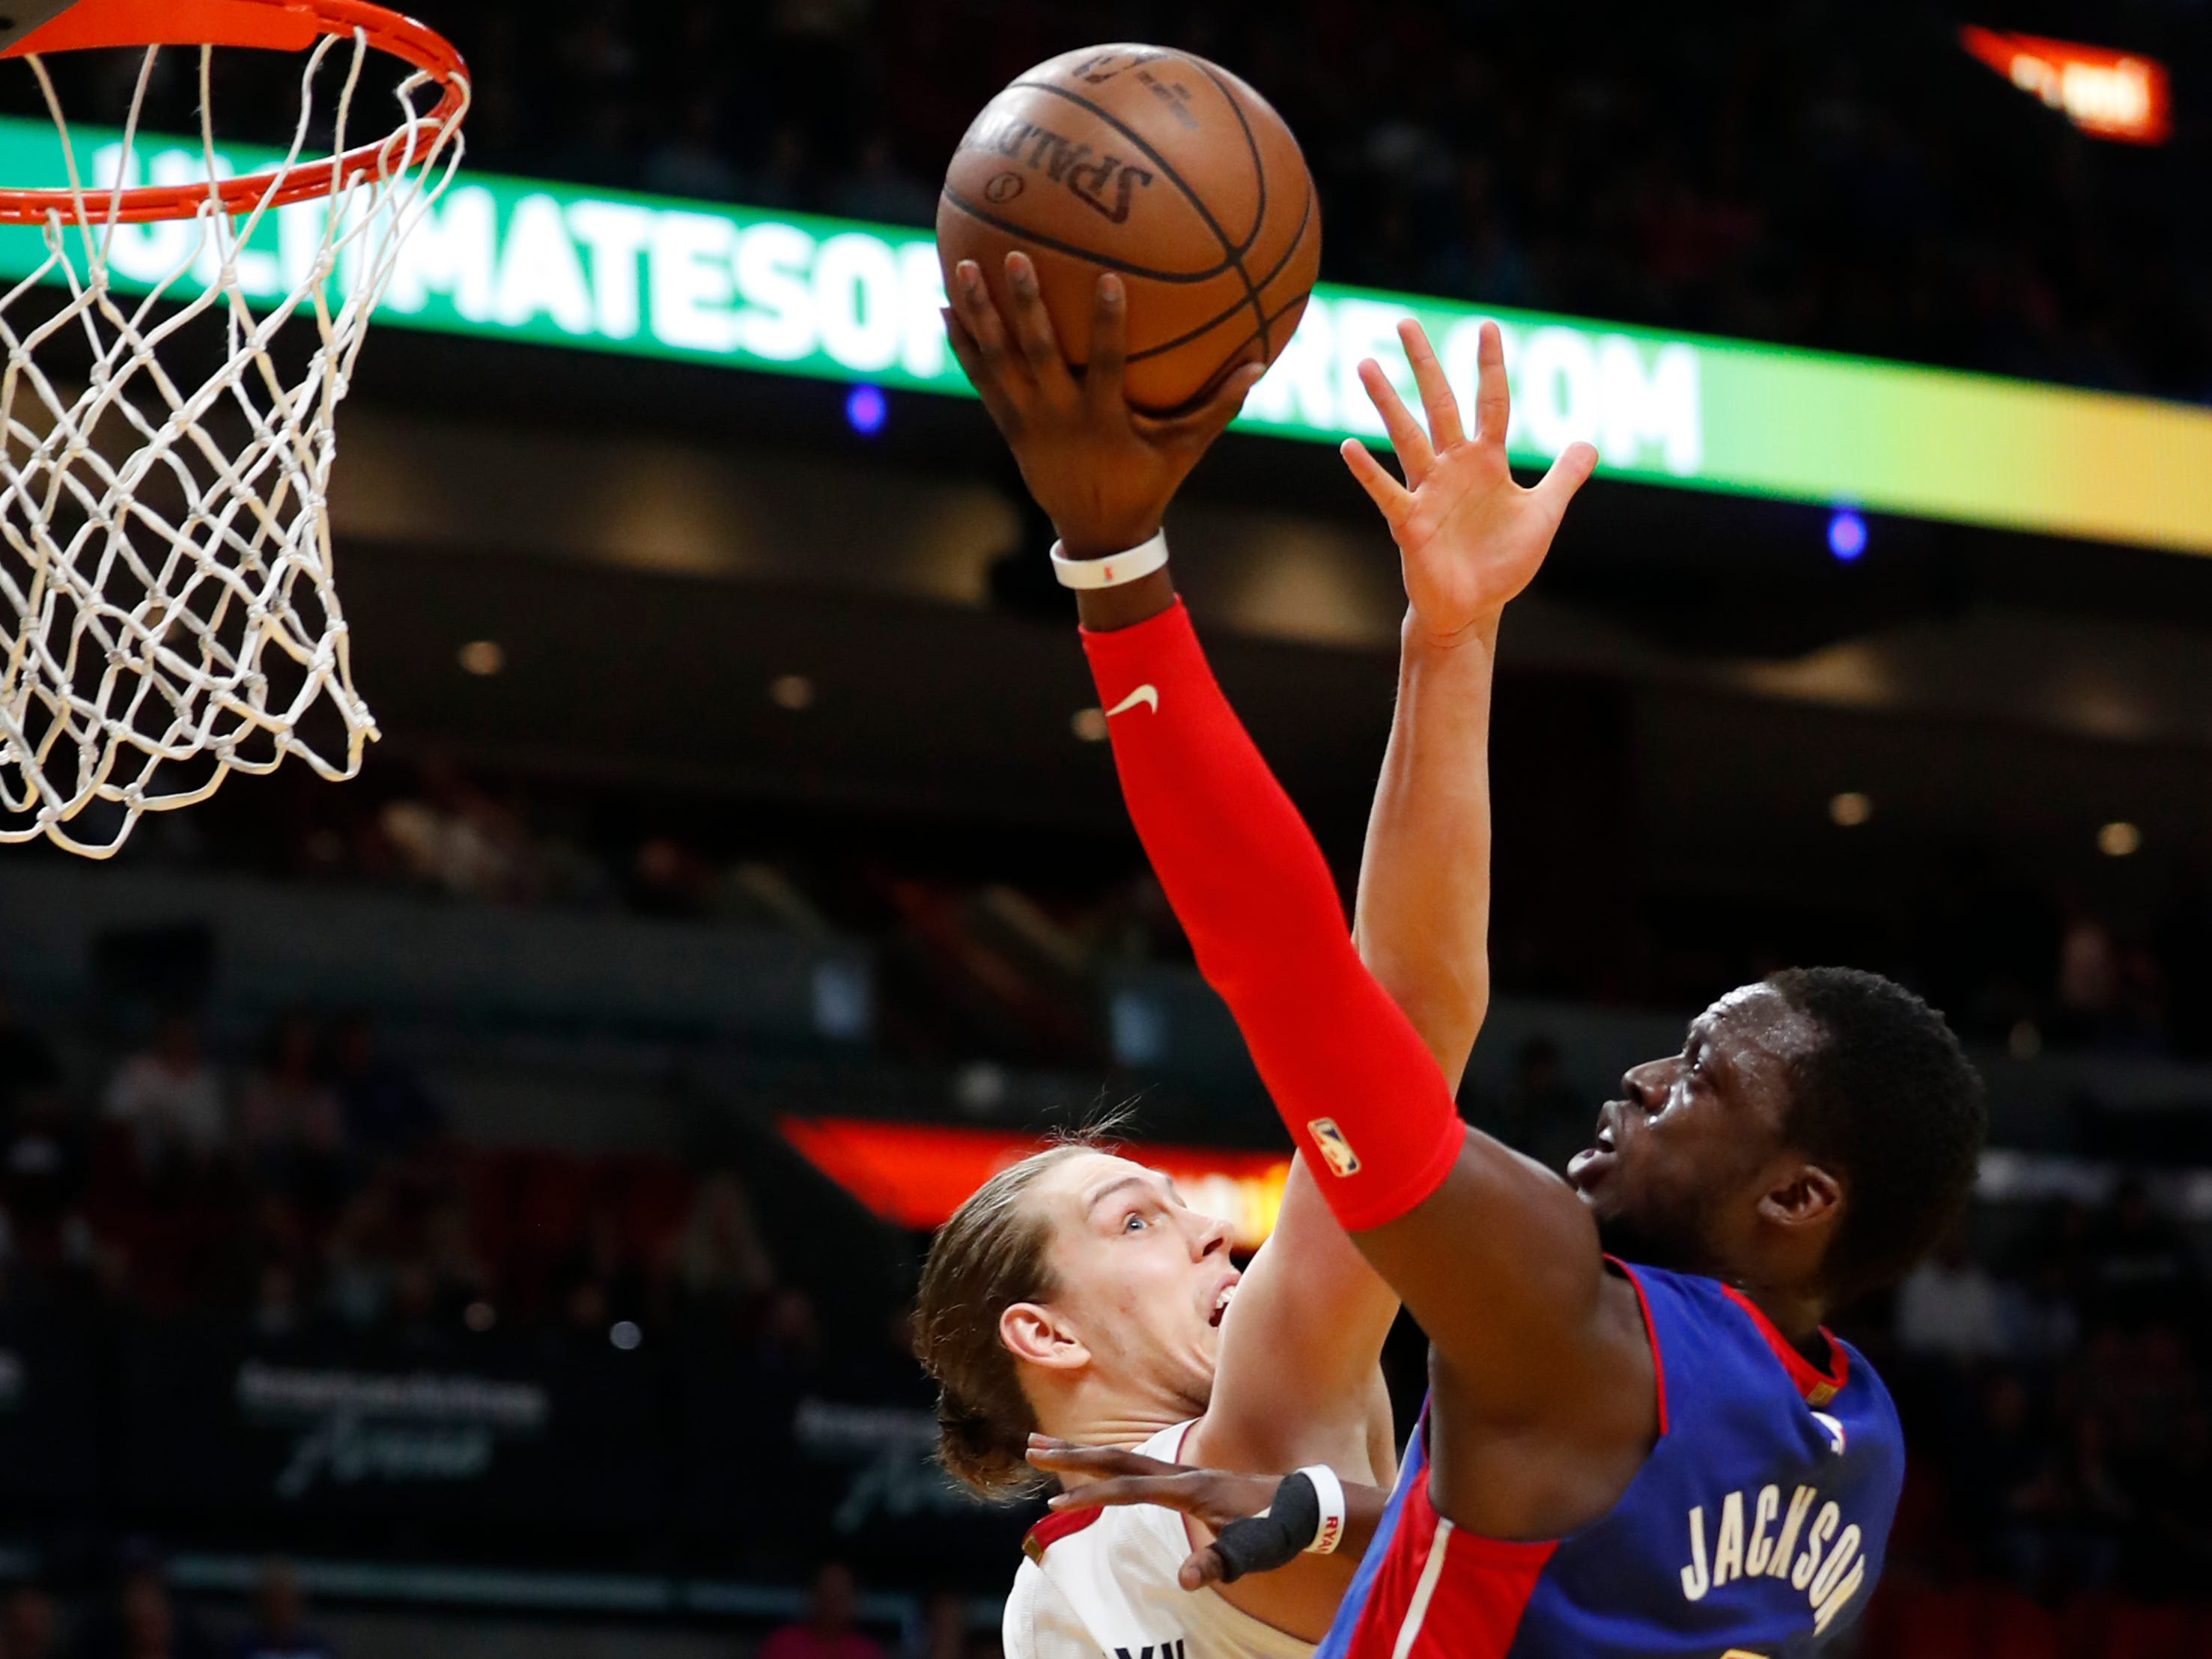 Detroit Pistons guard Reggie Jackson (1) shoots against Miami Heat forward Kelly Olynyk (9) during the first half.